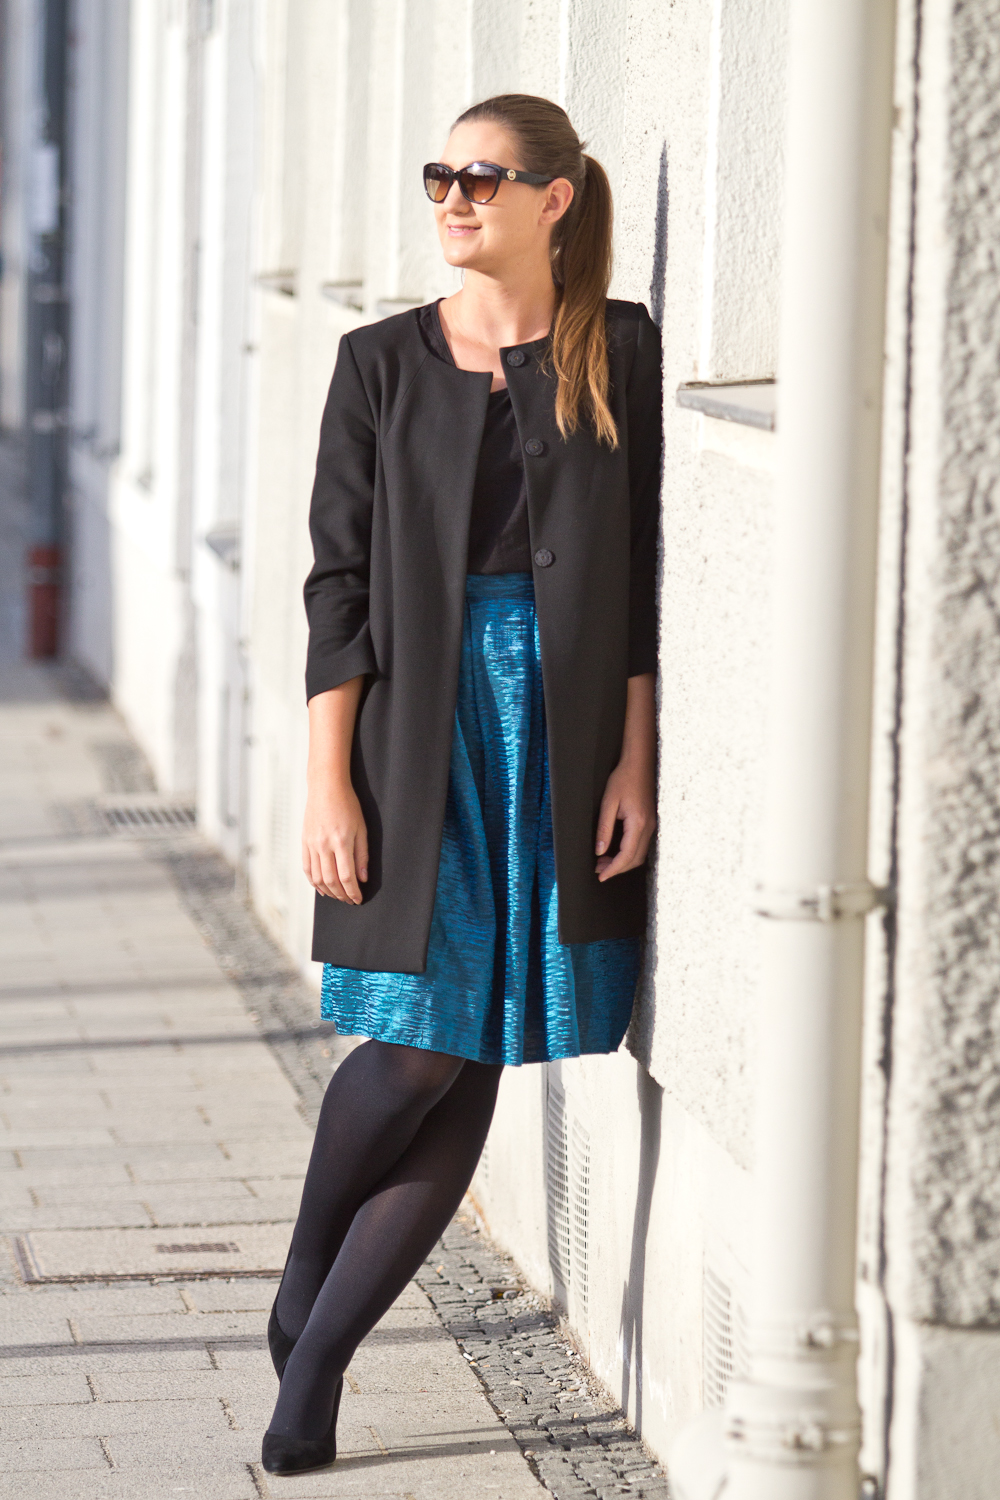 fruehling_muenchen_outfit_hallhuber_item_m6_01